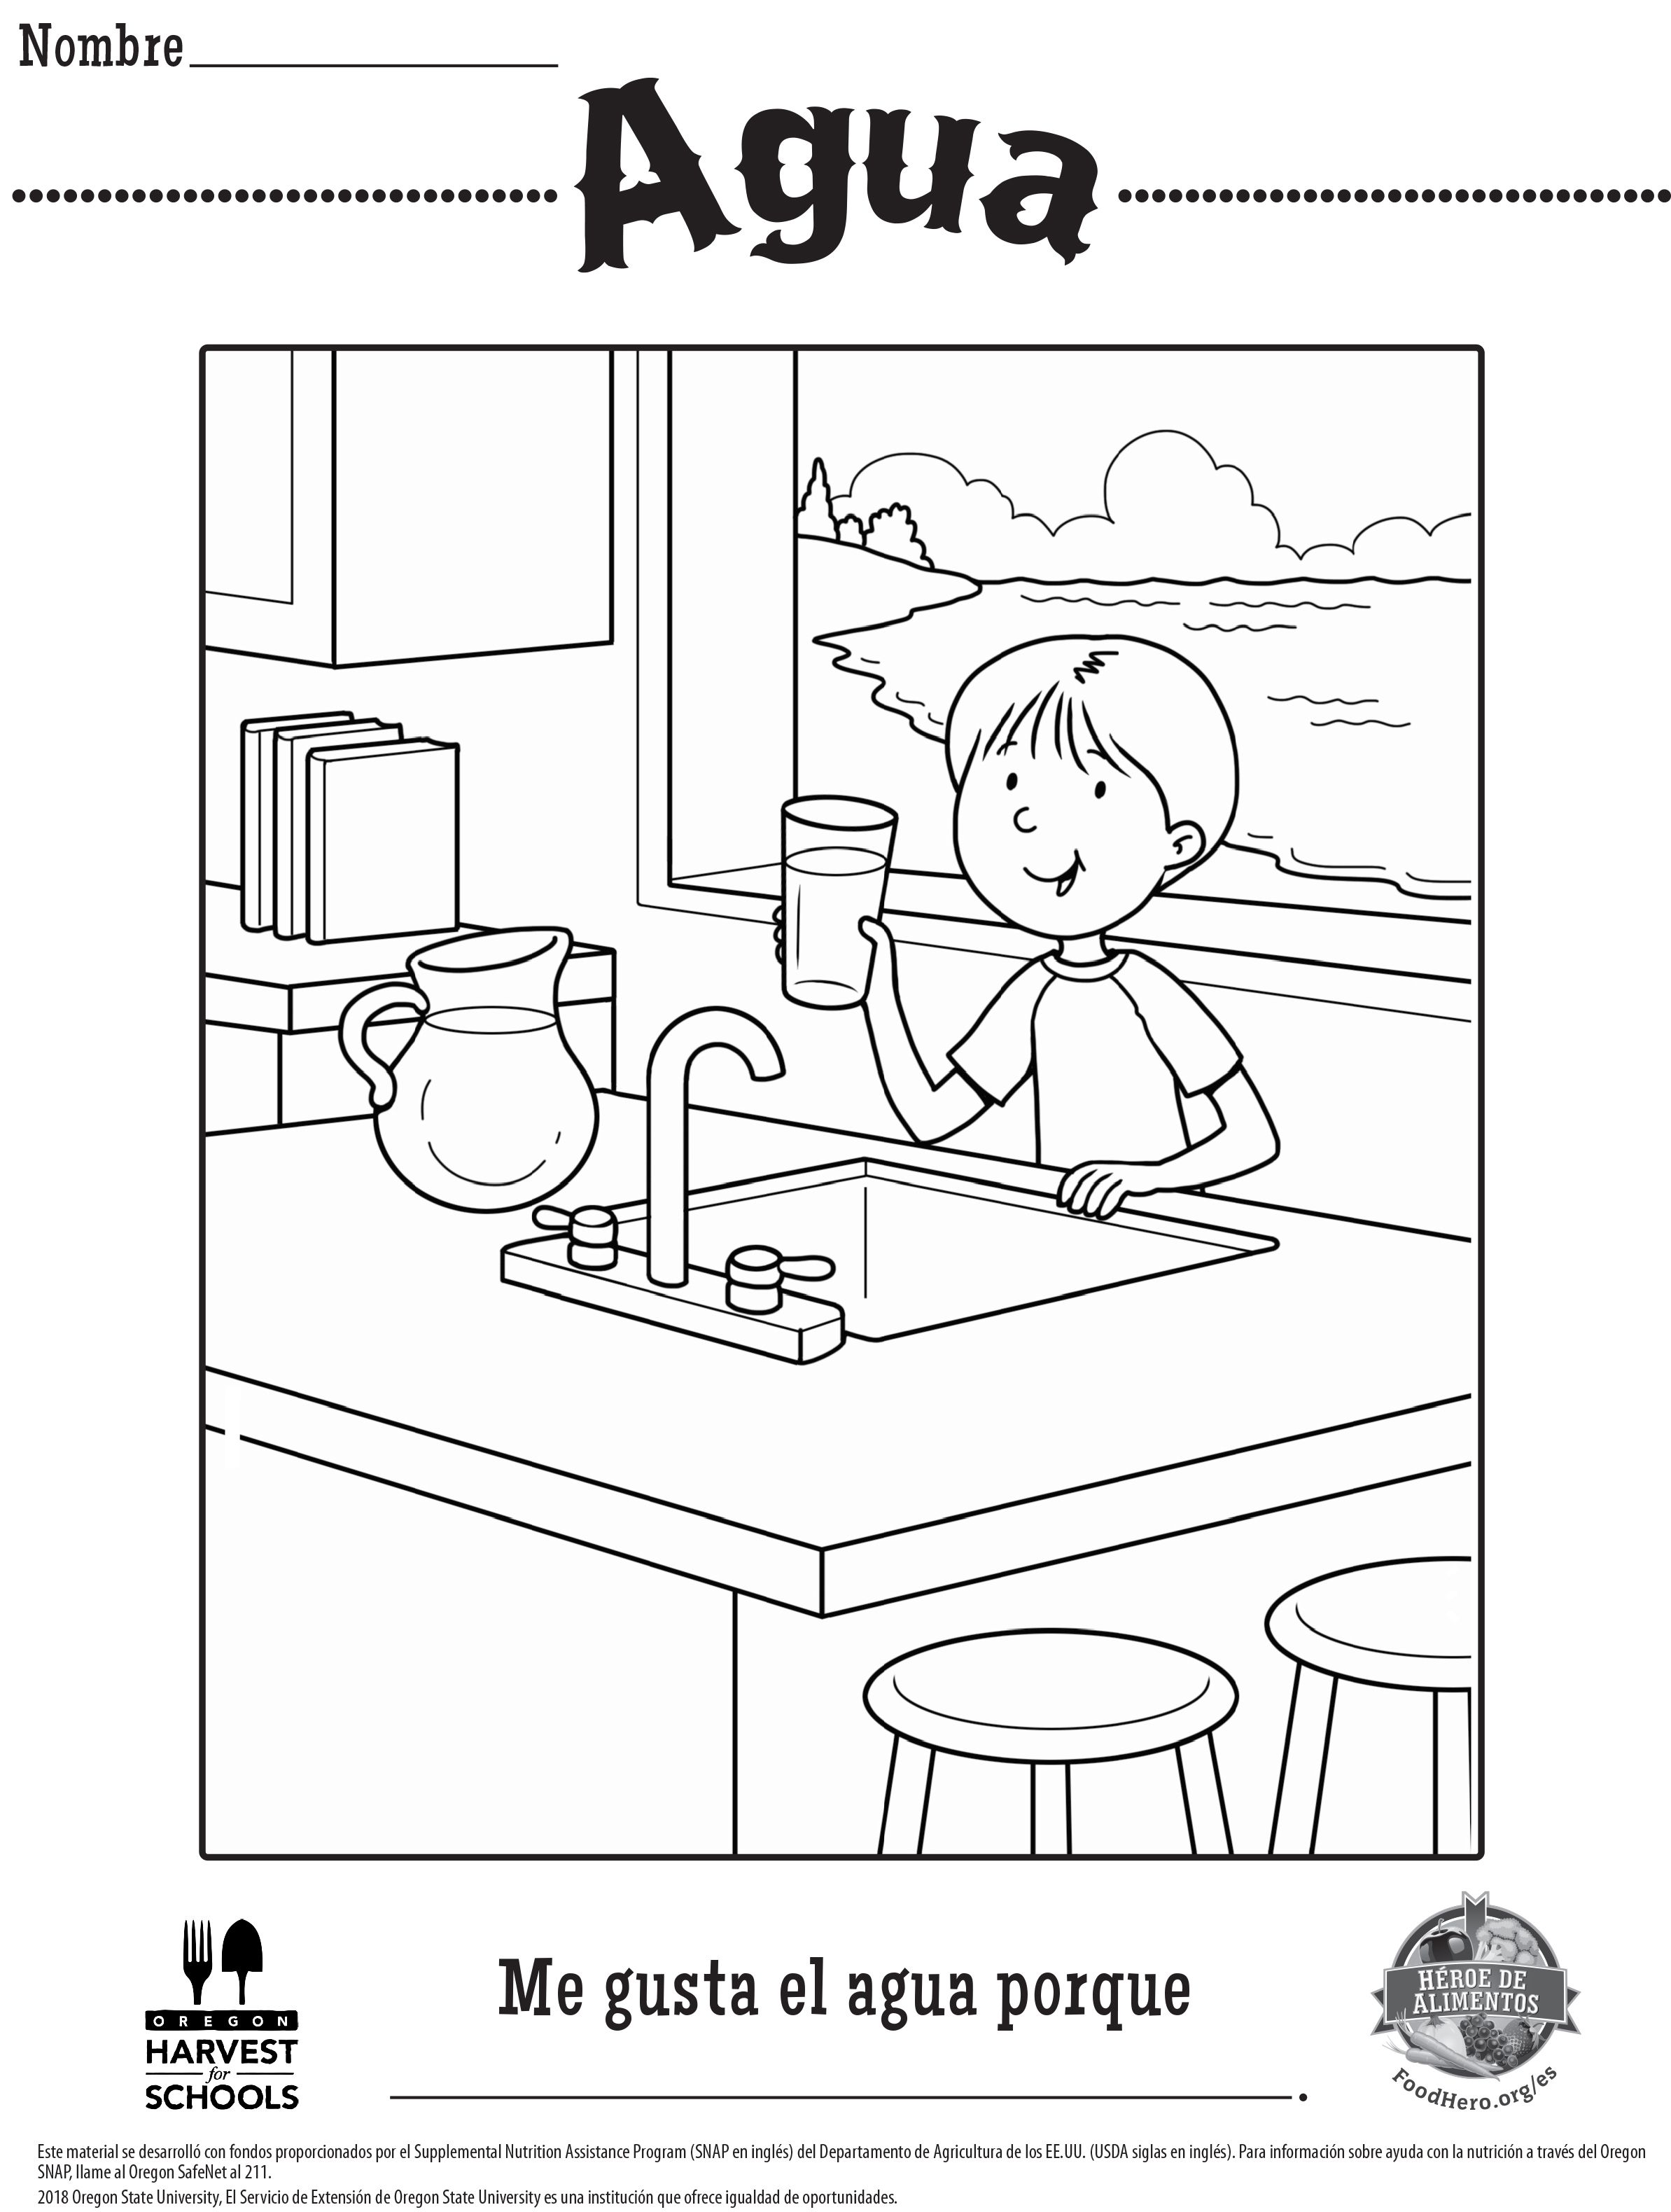 Coloring Sheets Image By Food Hero Osu Extension On